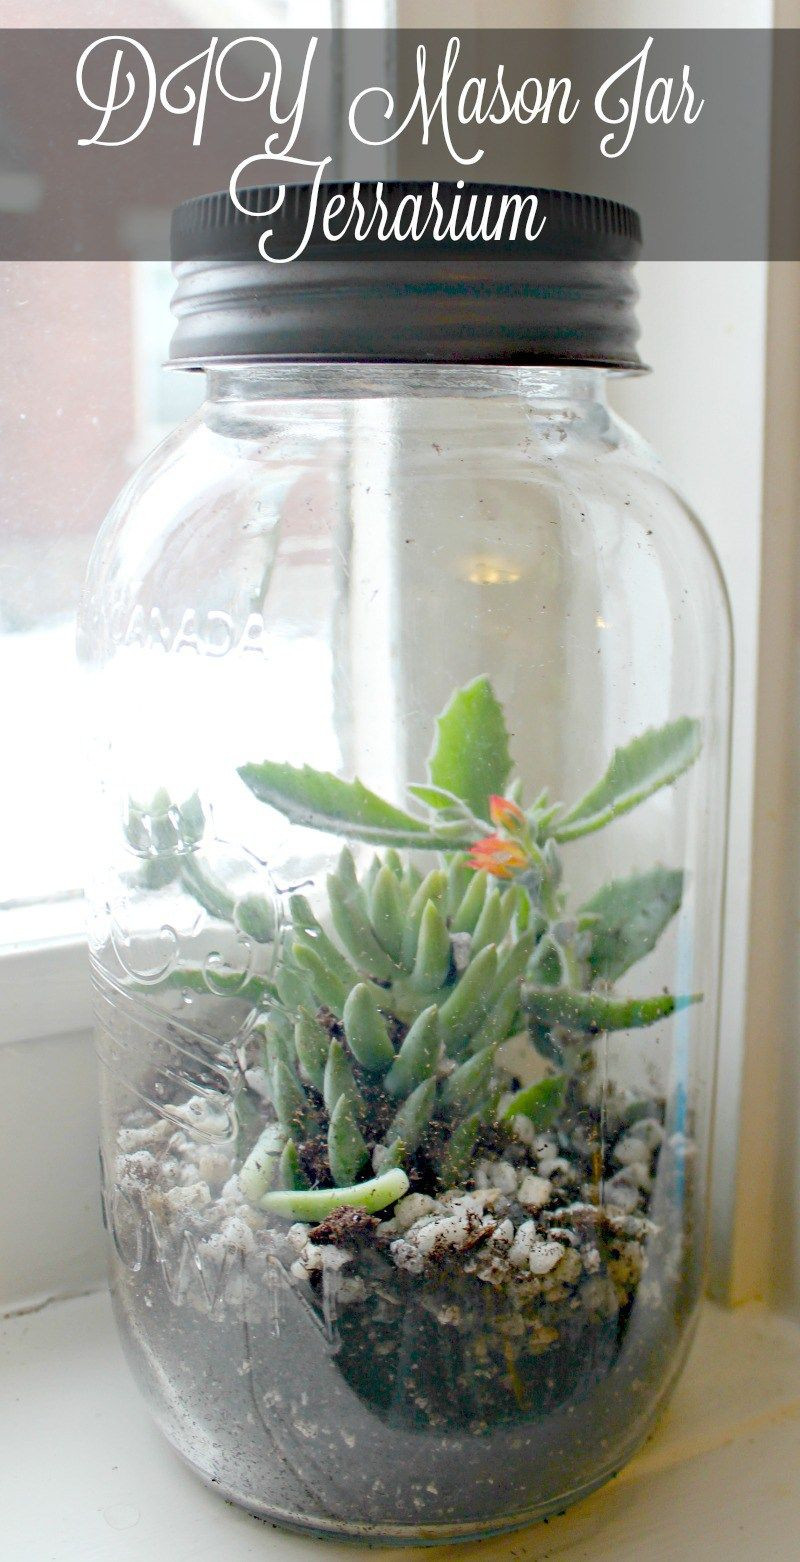 22 Stylish Glass Vase Terrarium